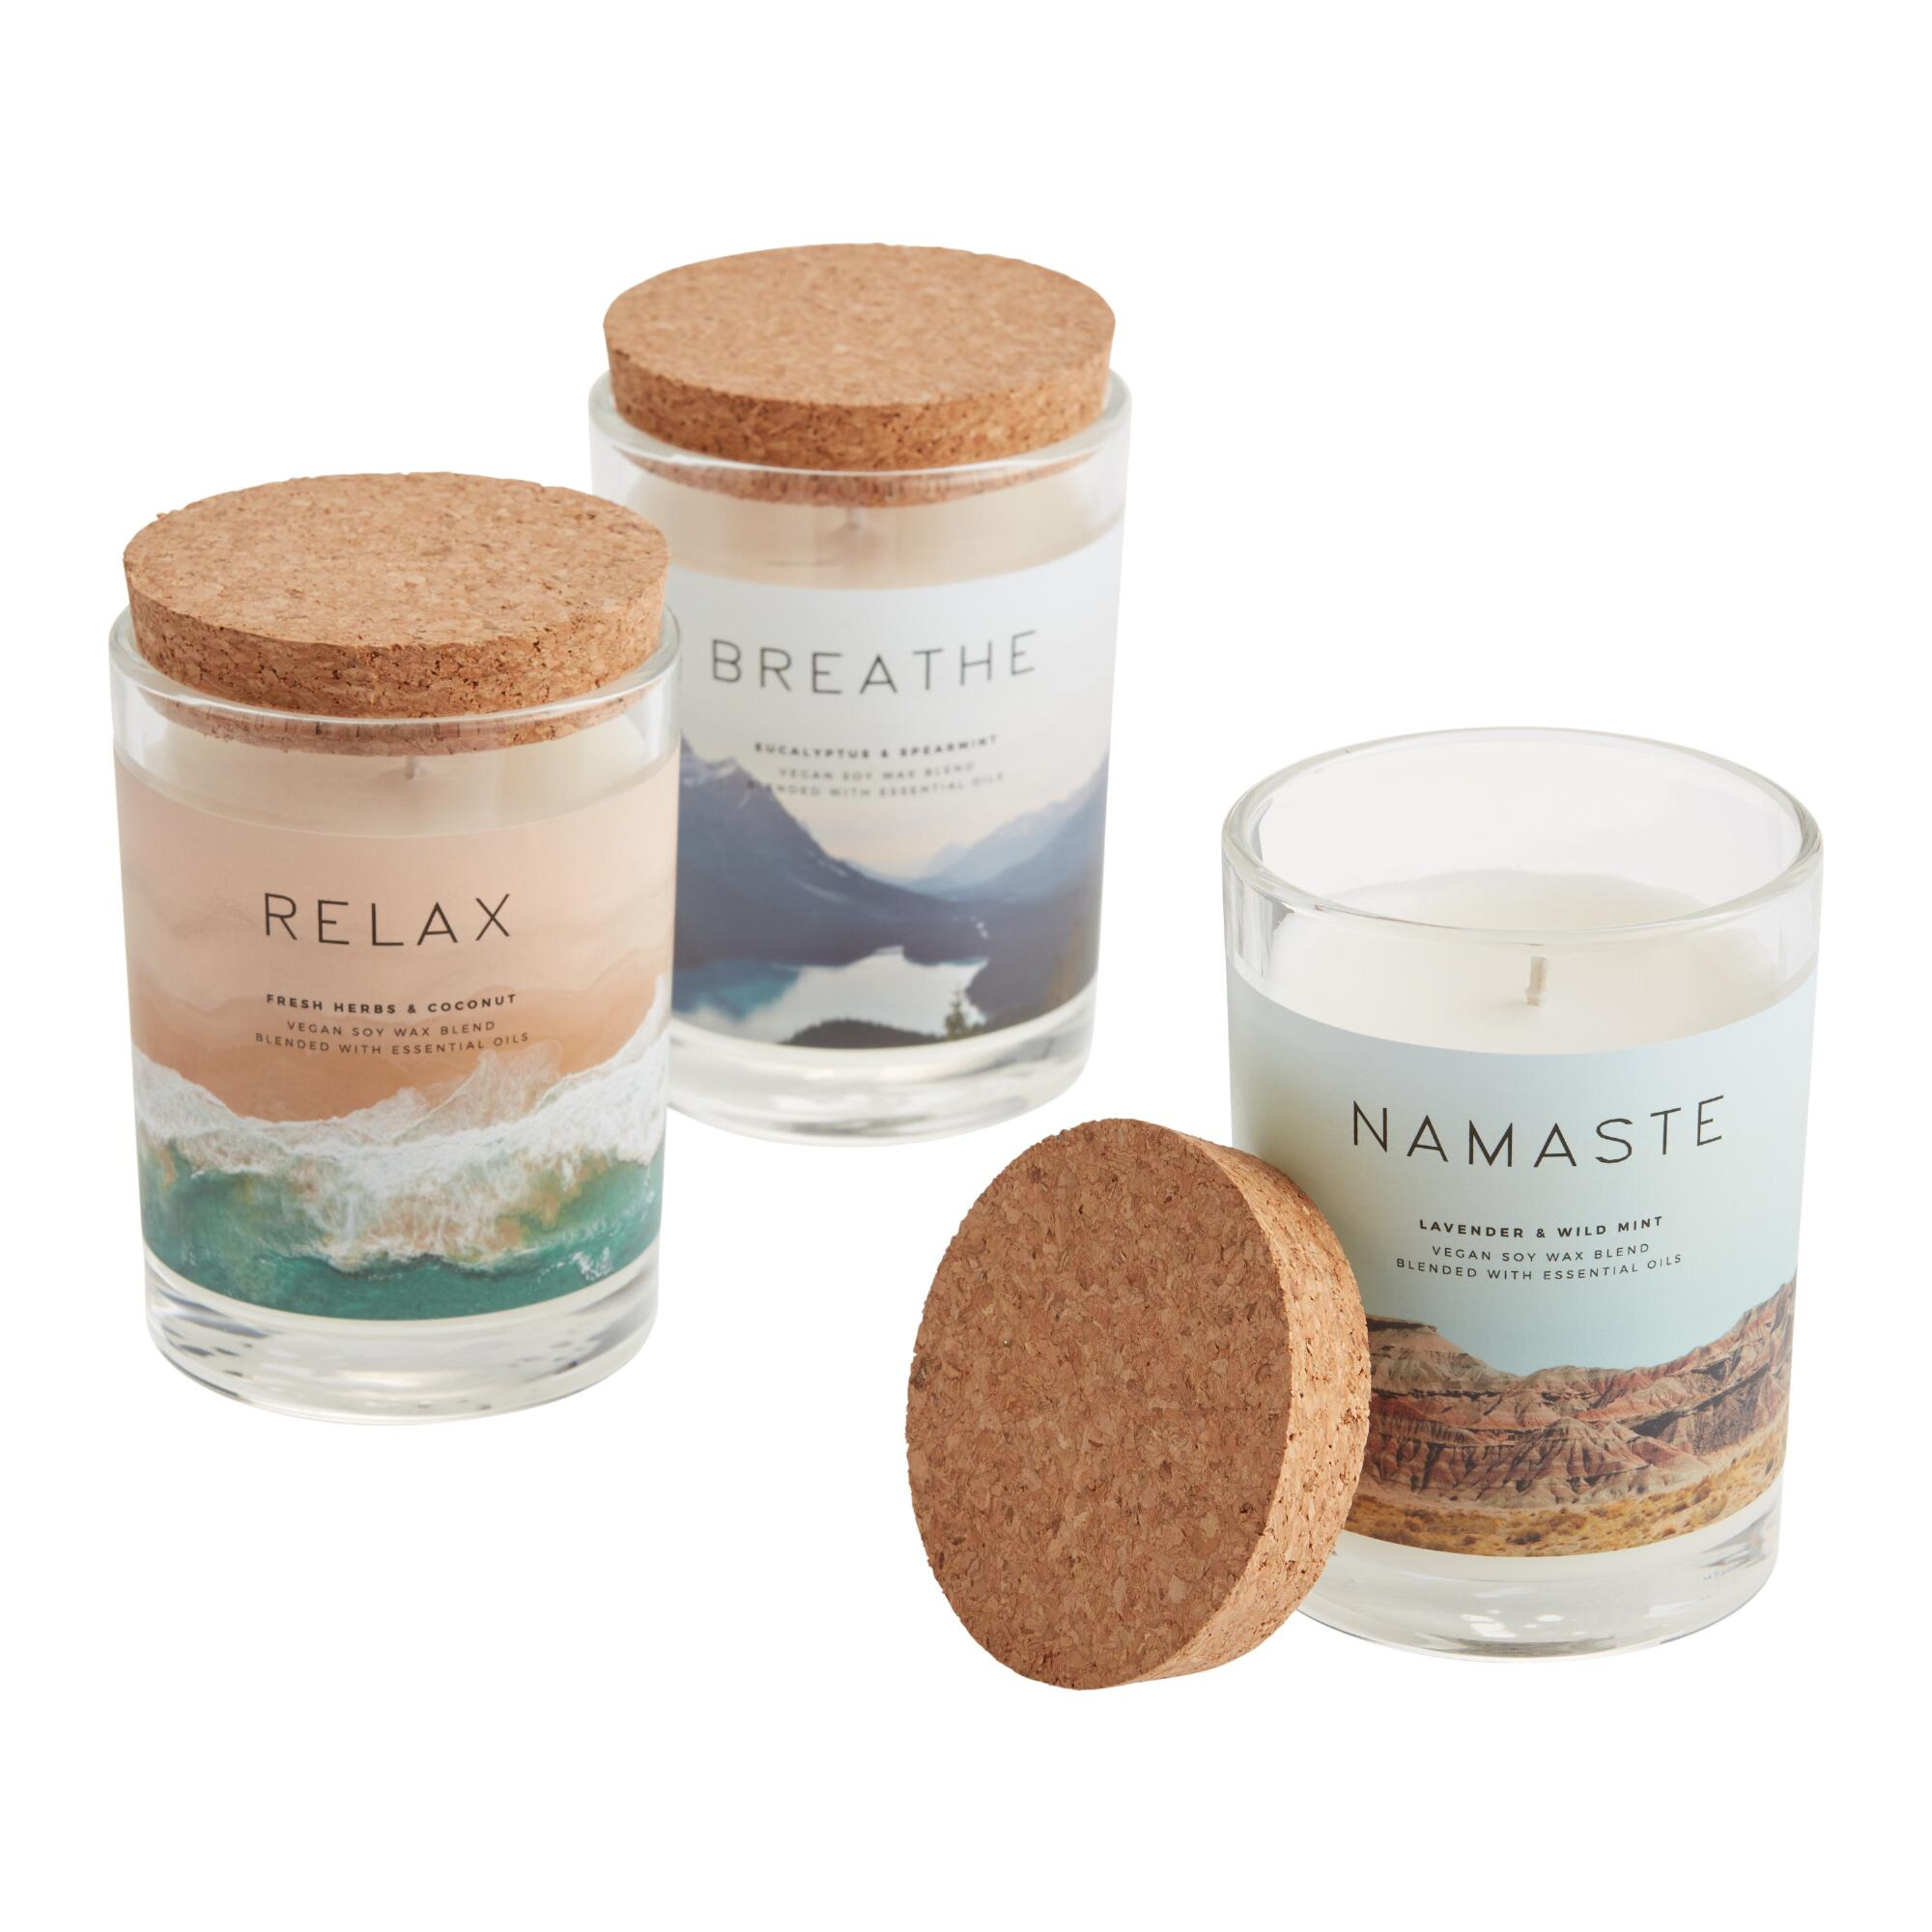 Meditative Filled Jar Candle $12.99